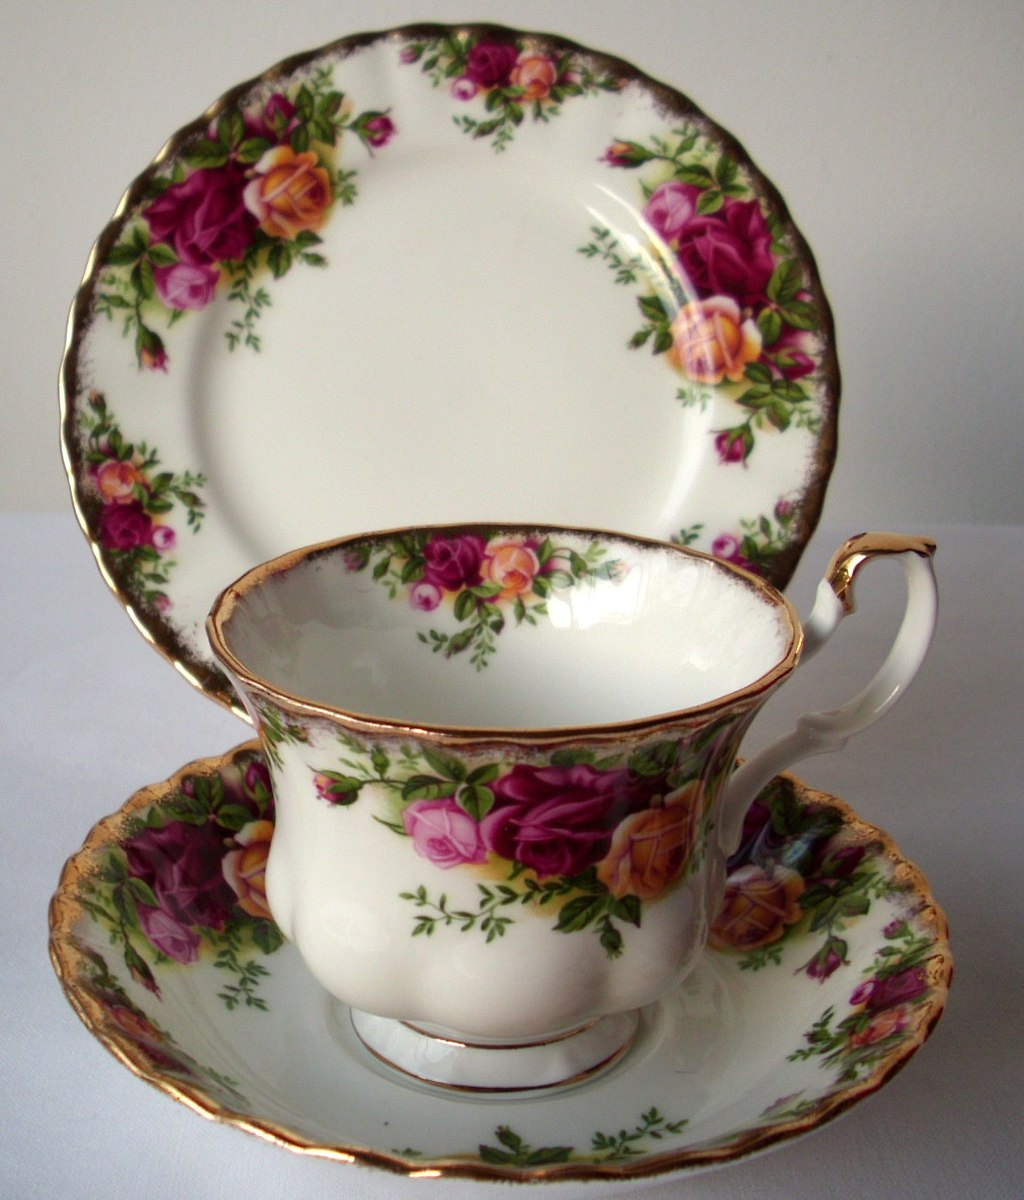 Trio taza plato t y postre porcelana inglesa royal for Platos porcelana